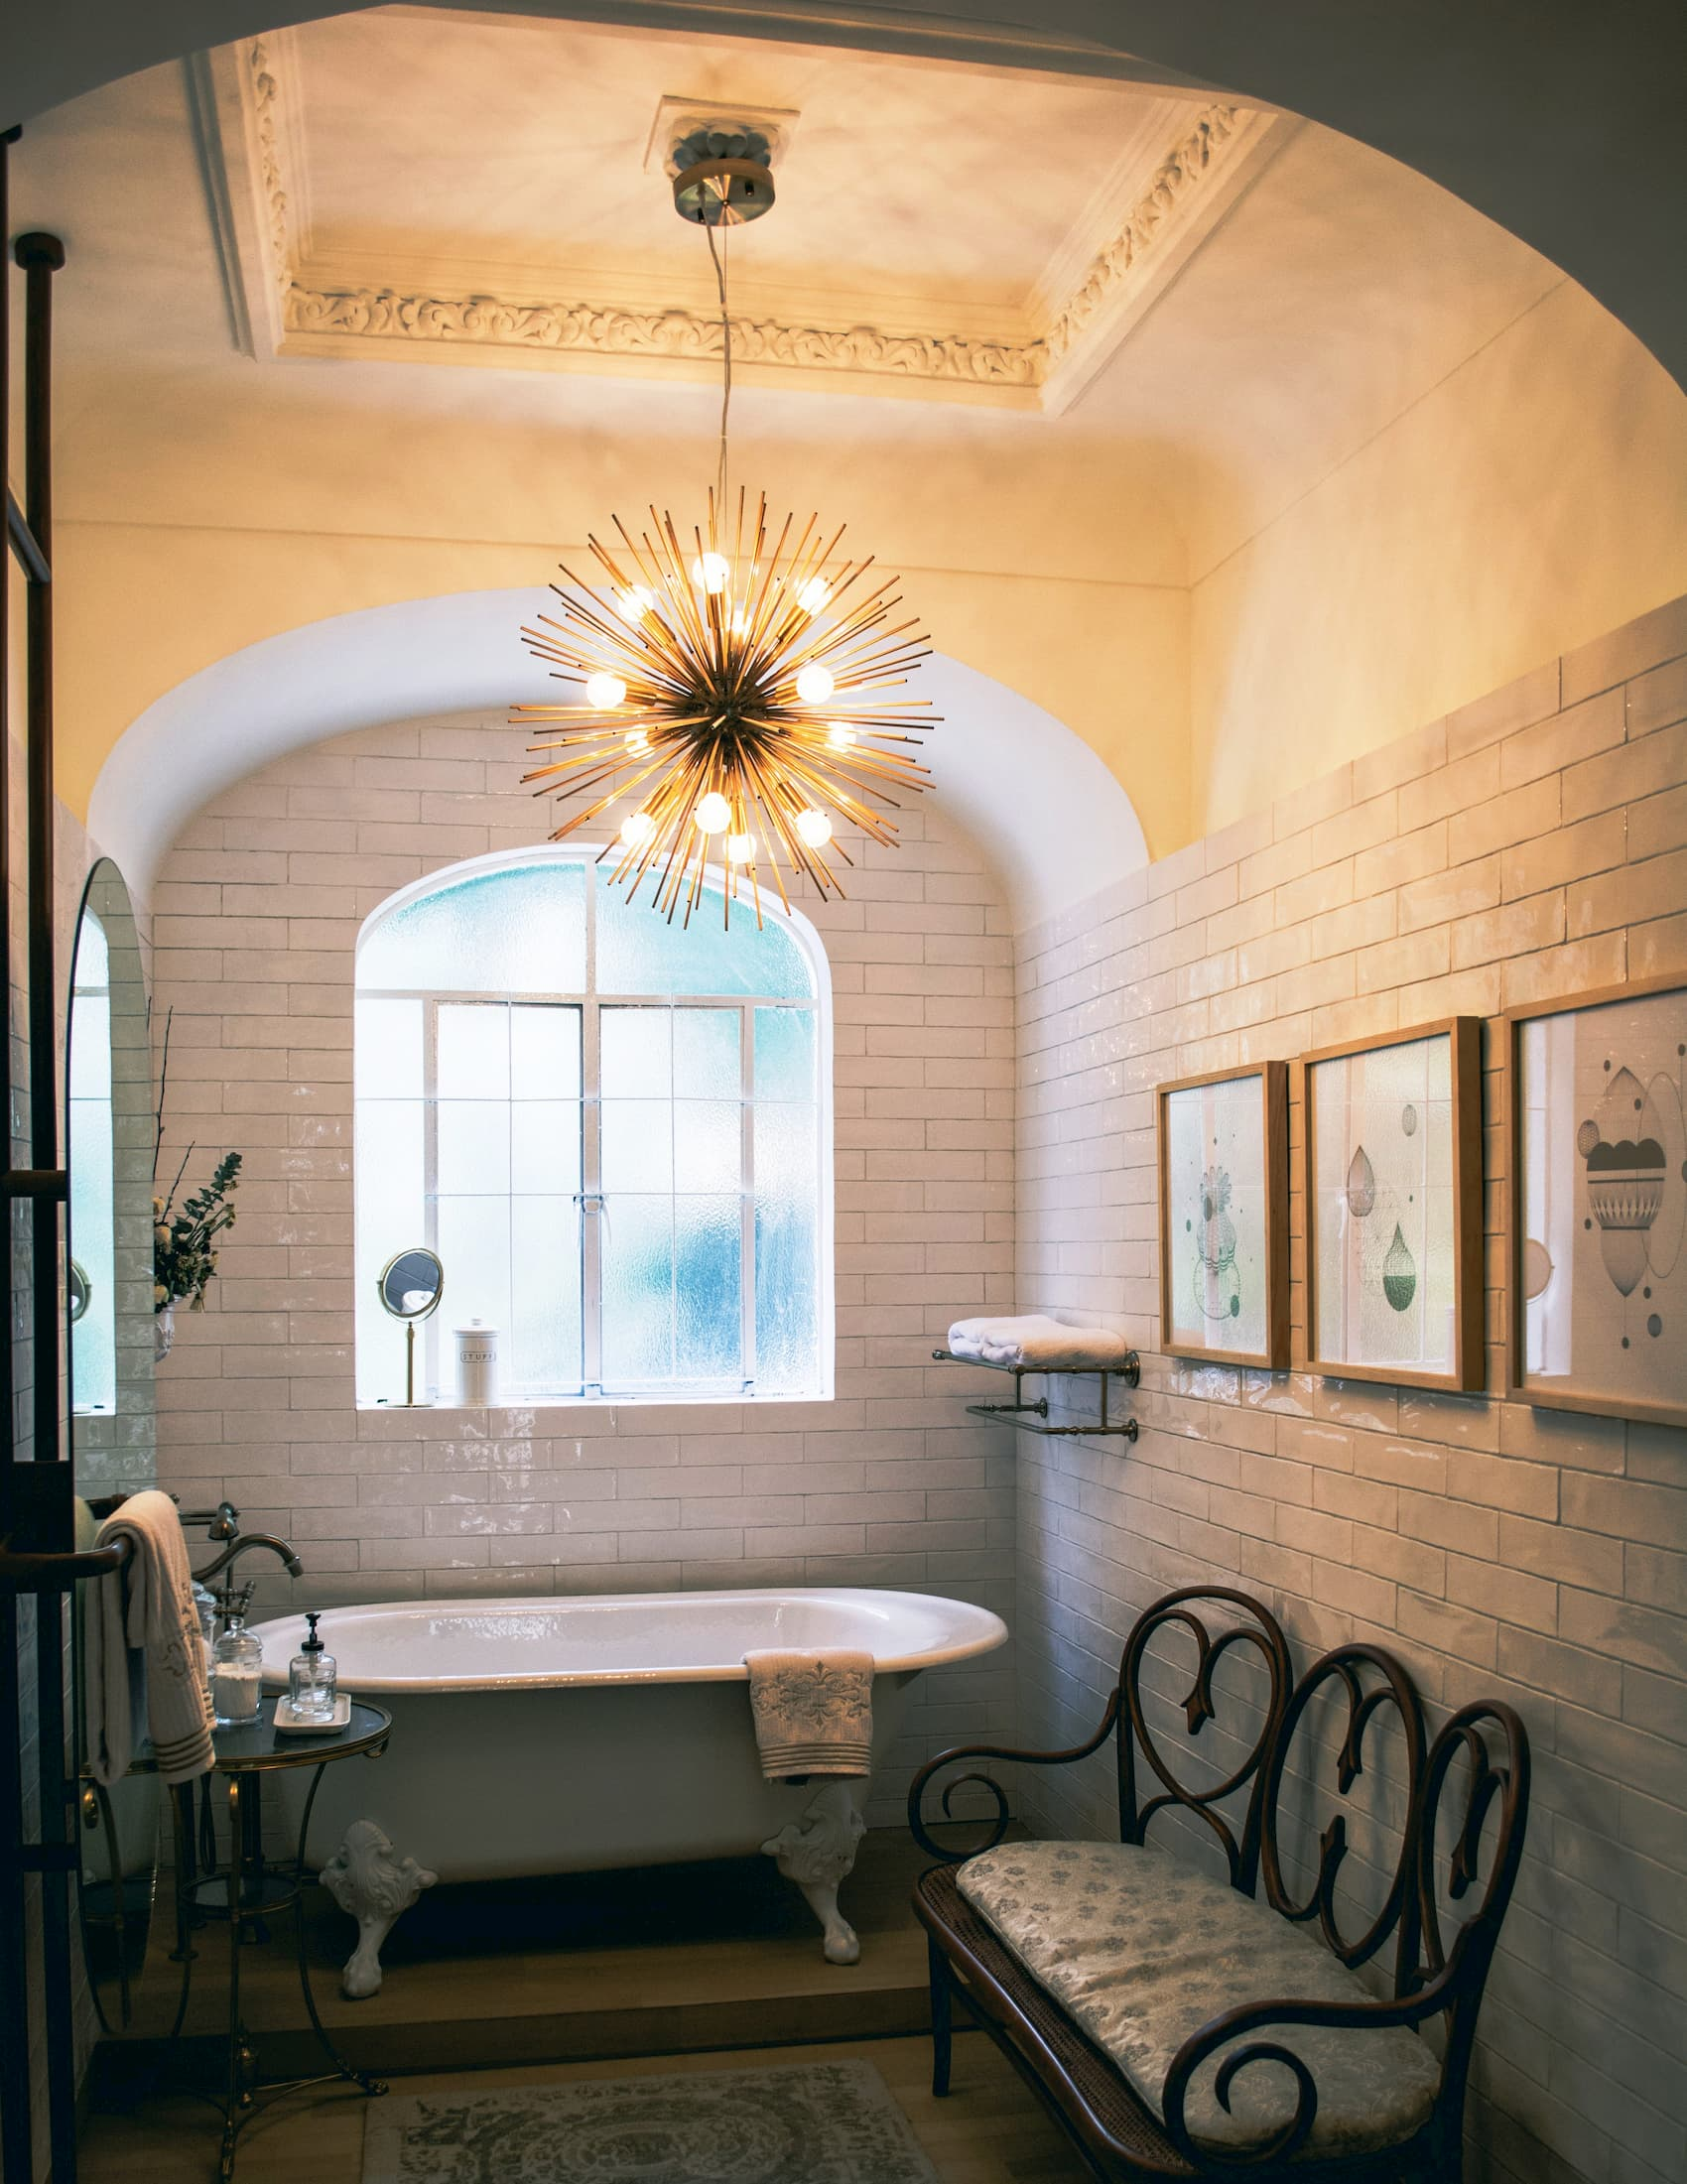 A square bathroom with cornice, a rug, a sofa, pictures, a chandelier hanging from the ceiling, and an antique tub standing on legs